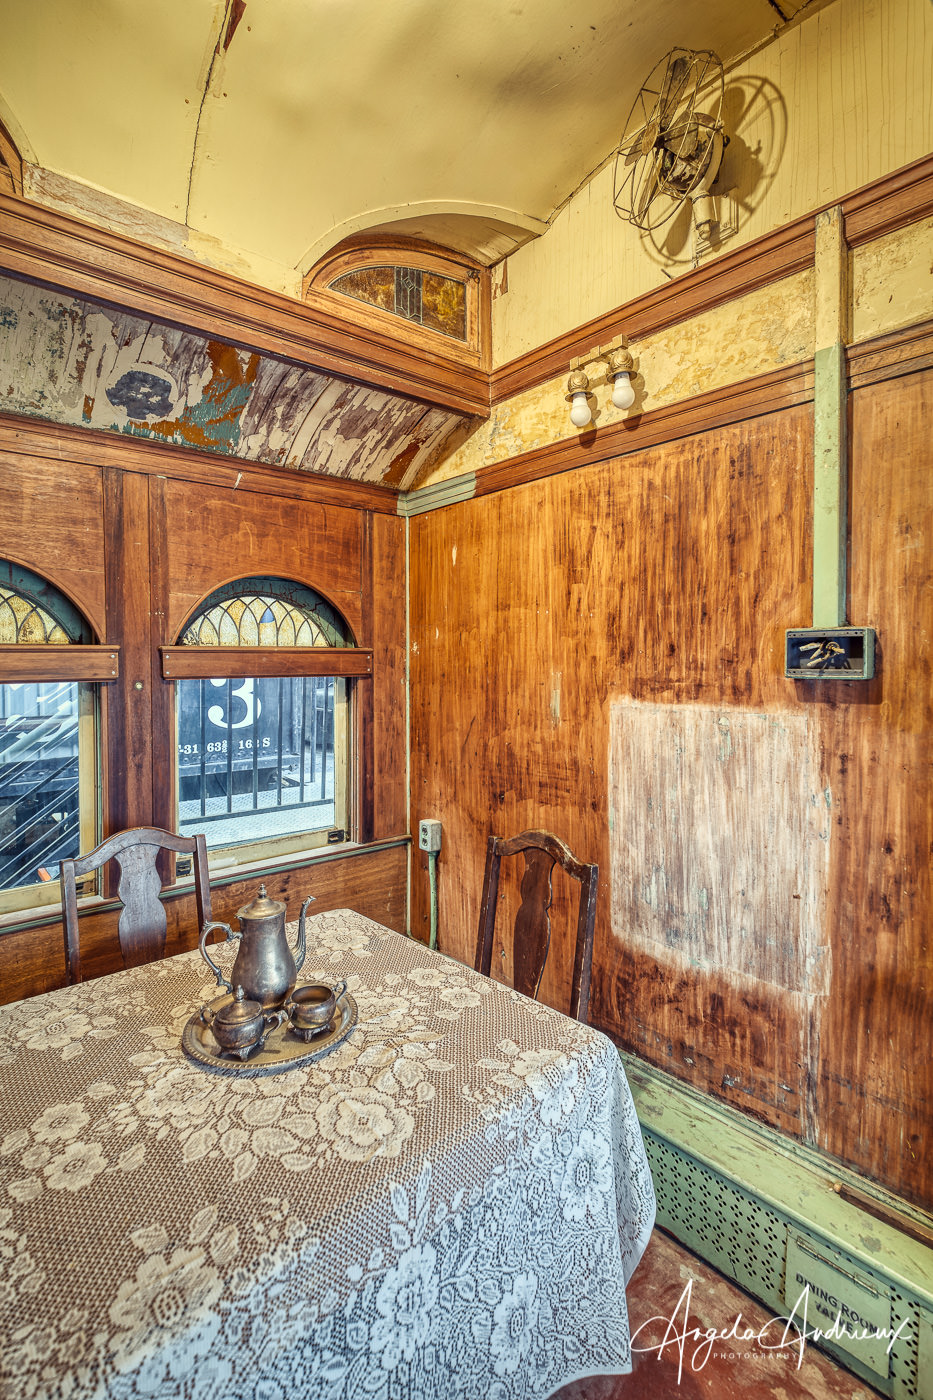 Priviate Dining Room in a private railway carriage at the Pacific Southwest Railway Museum in Campo, California